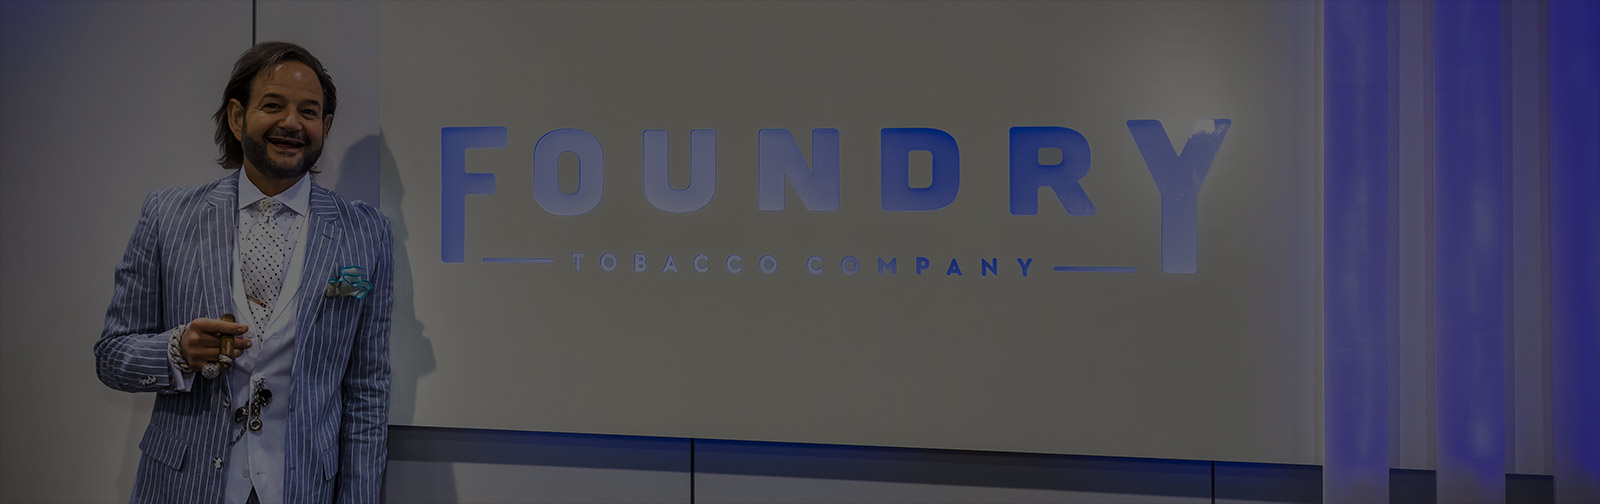 Custom Branded Environment Feature Area for Foundry Tobacco Company